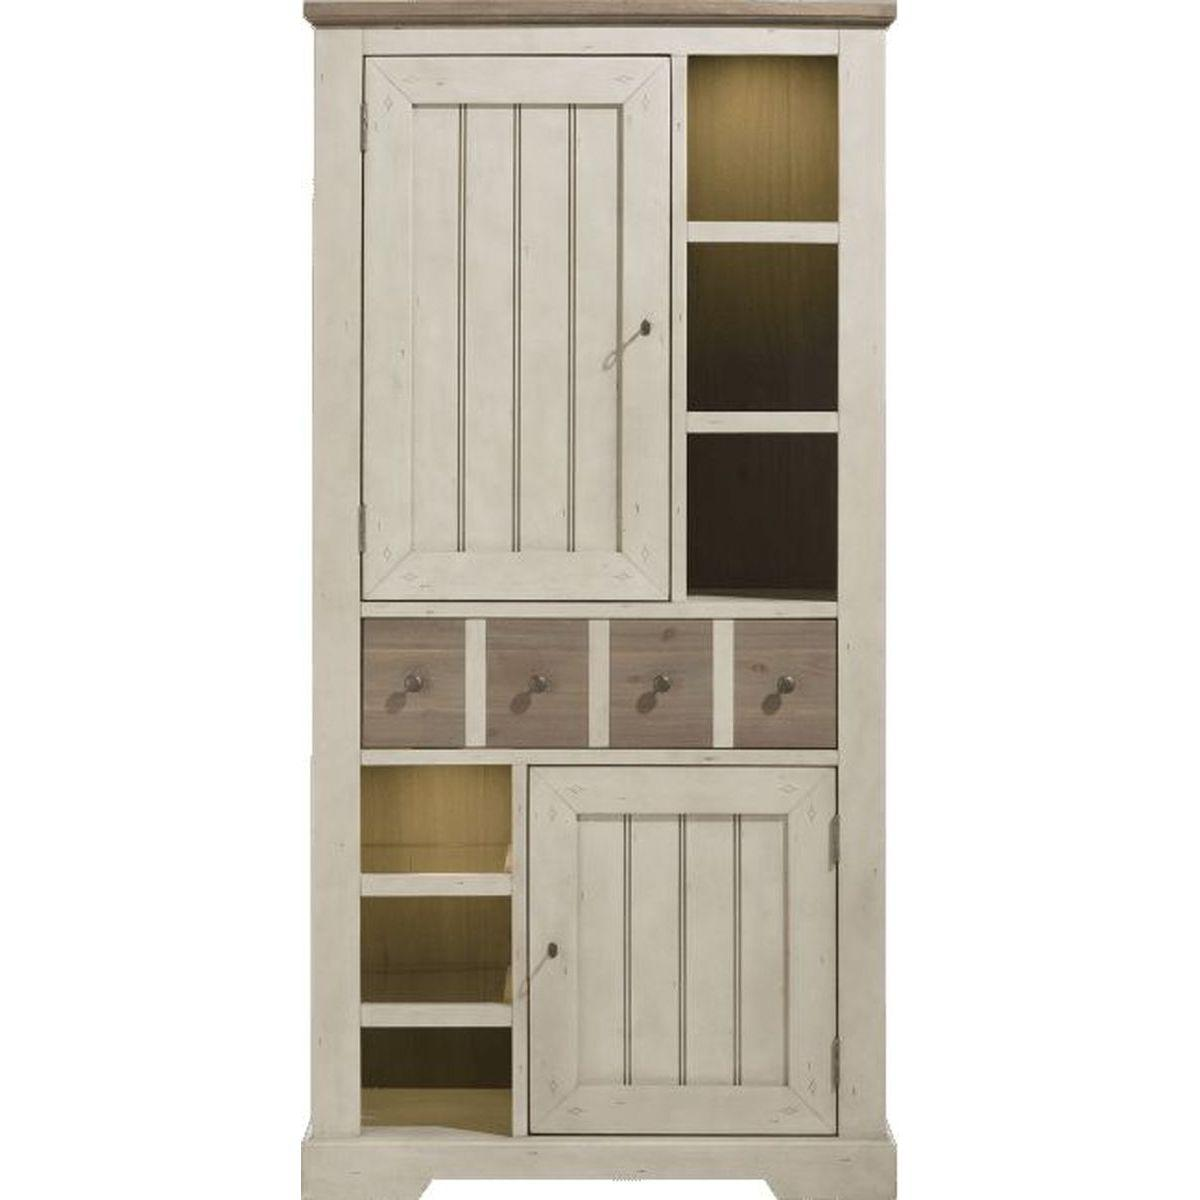 LE PORT by H&H Armoire 200cm White